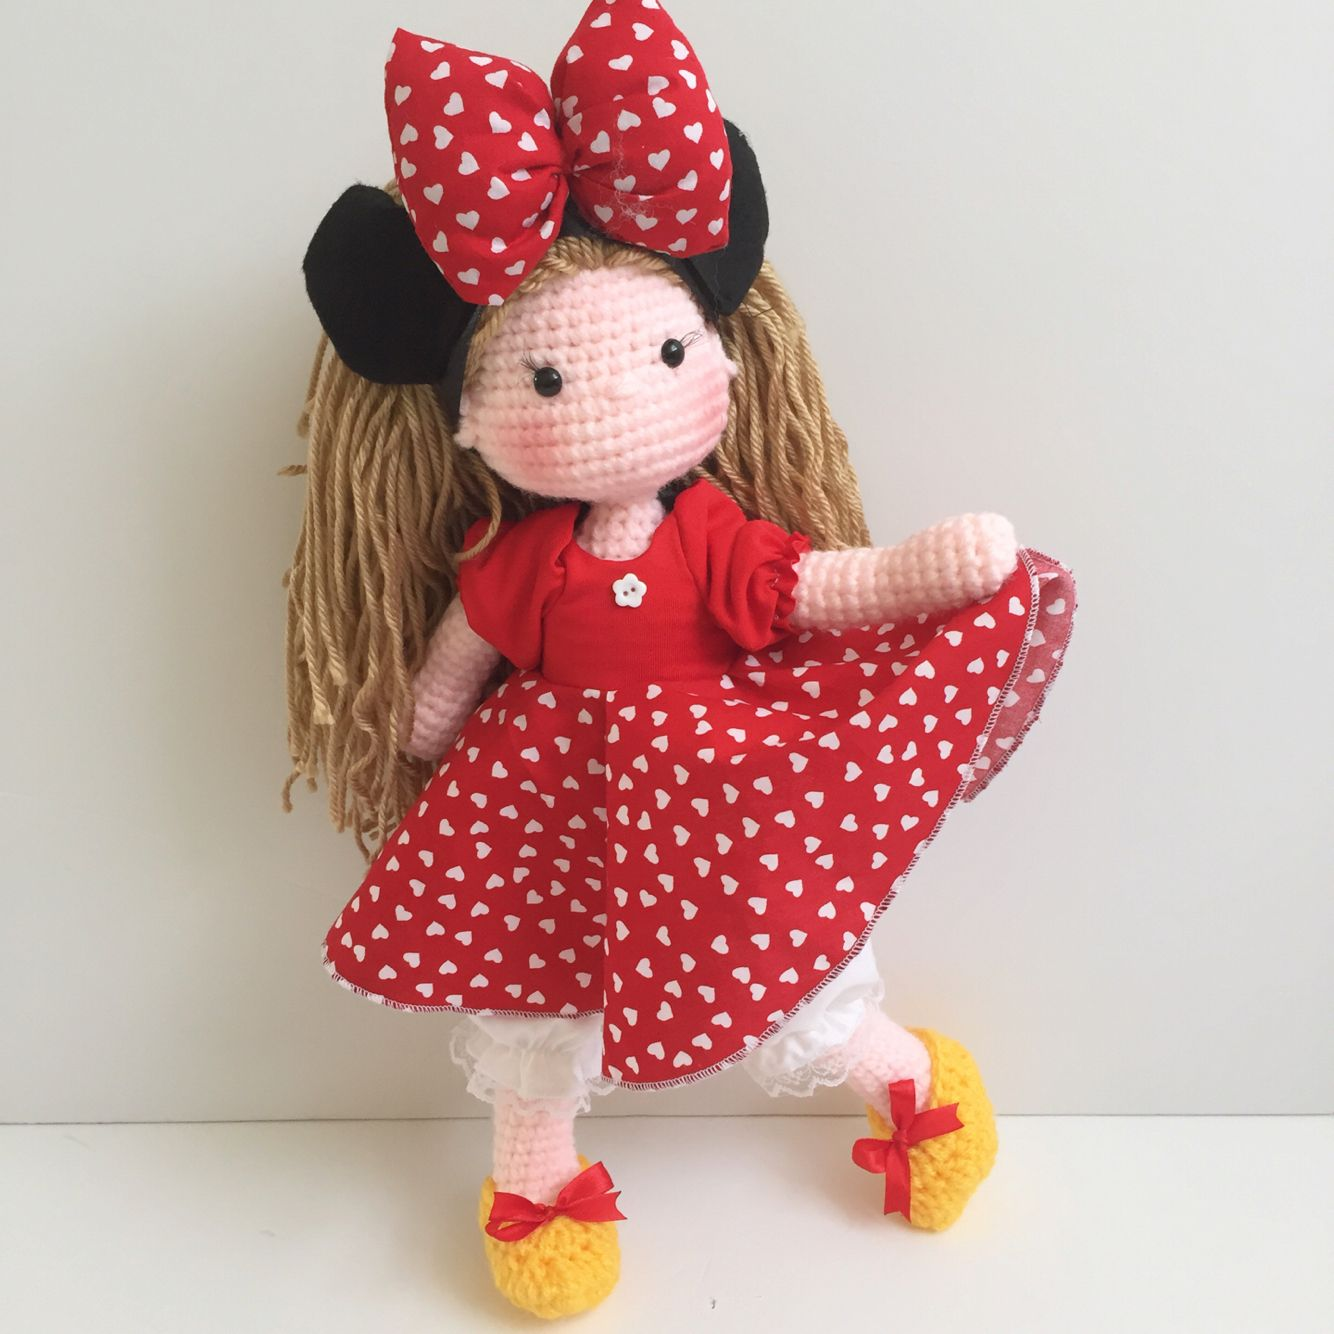 Amigurumi minnie mouse doll nathaliesweetstitches pinterest amigurumi minnie mouse doll bankloansurffo Choice Image